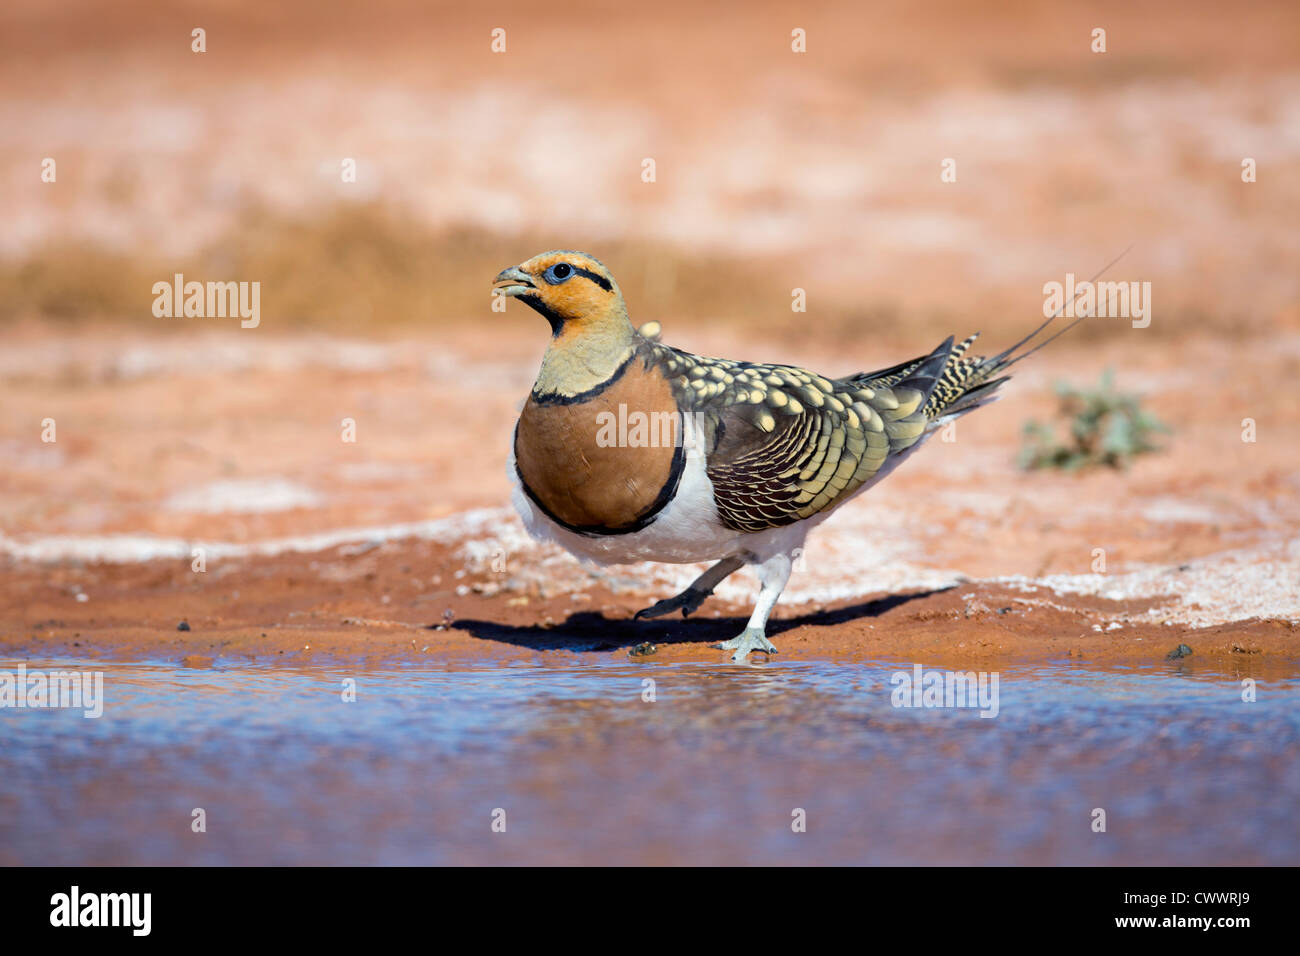 Pin Tailed Sandgrouse; Pterocles alchata;drinking at pool; Spain; summer - Stock Image